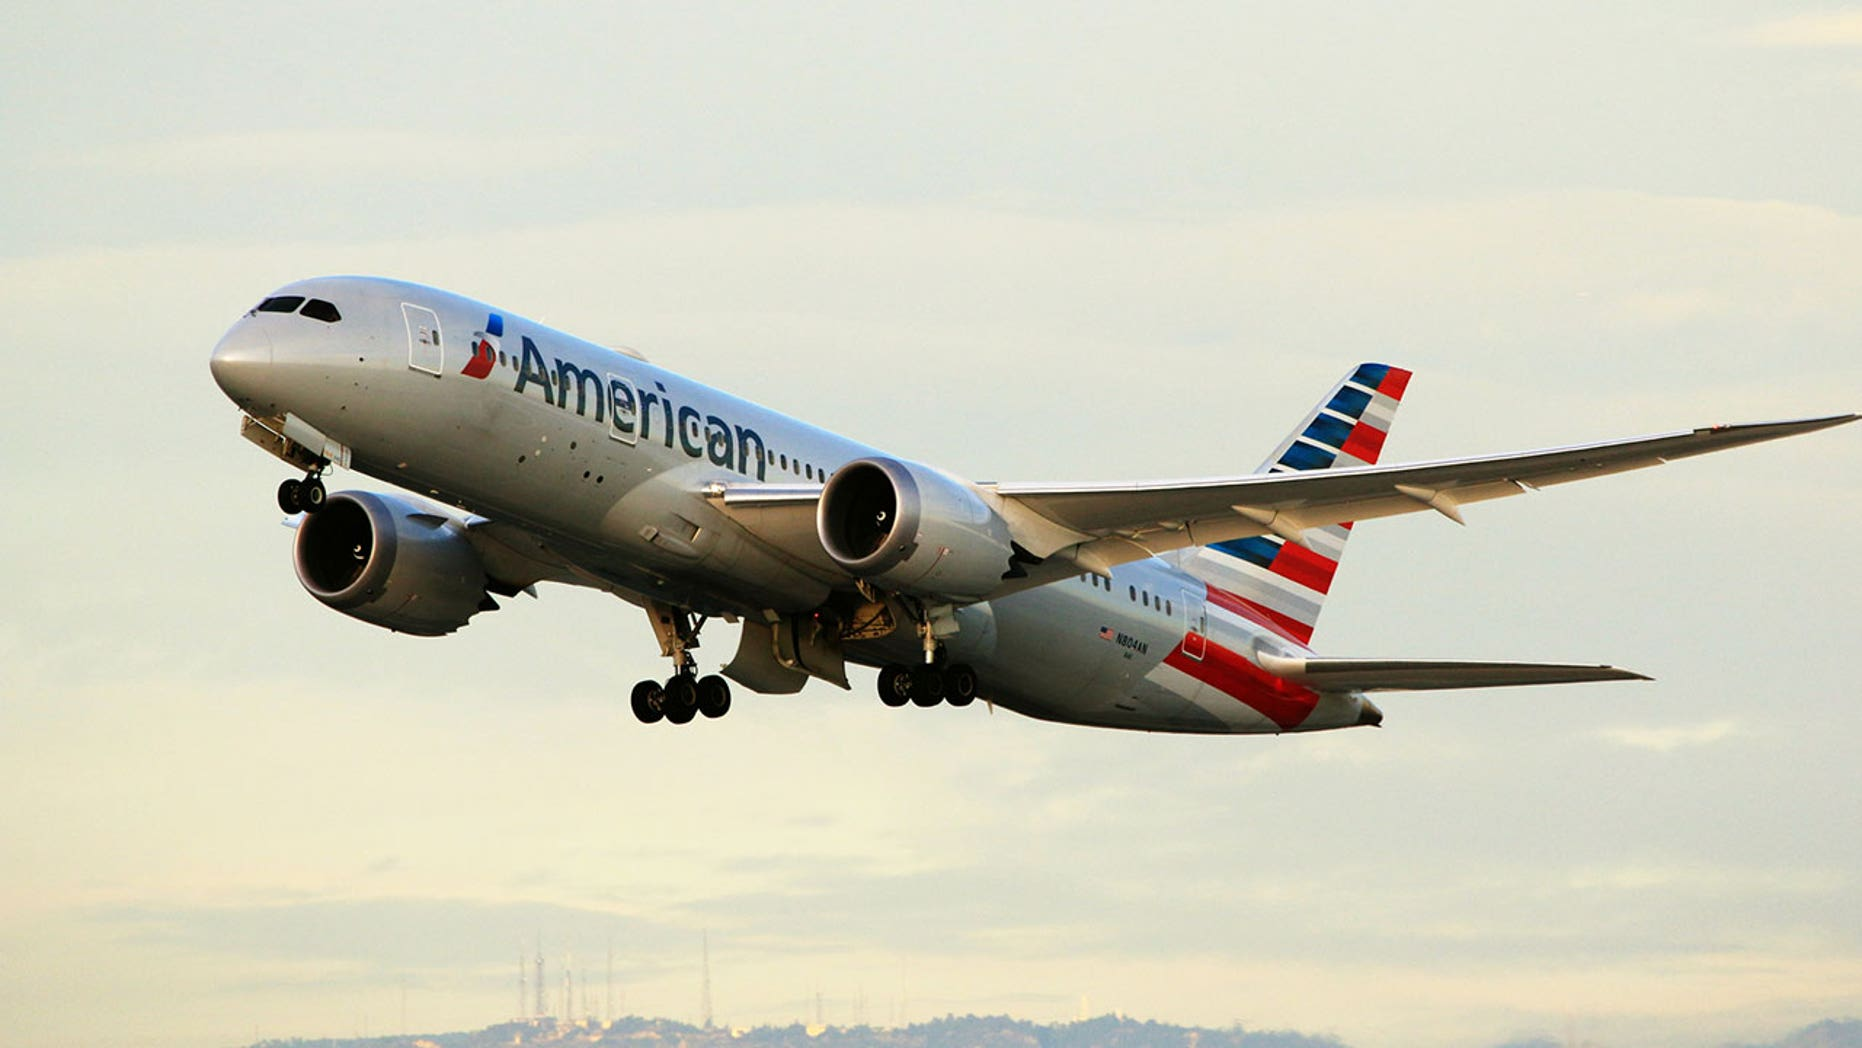 """American Airlines has responded to the video, denying any involvement in the """"customer-organized concert"""" and saying it """"was not sanctioned by the airline."""""""